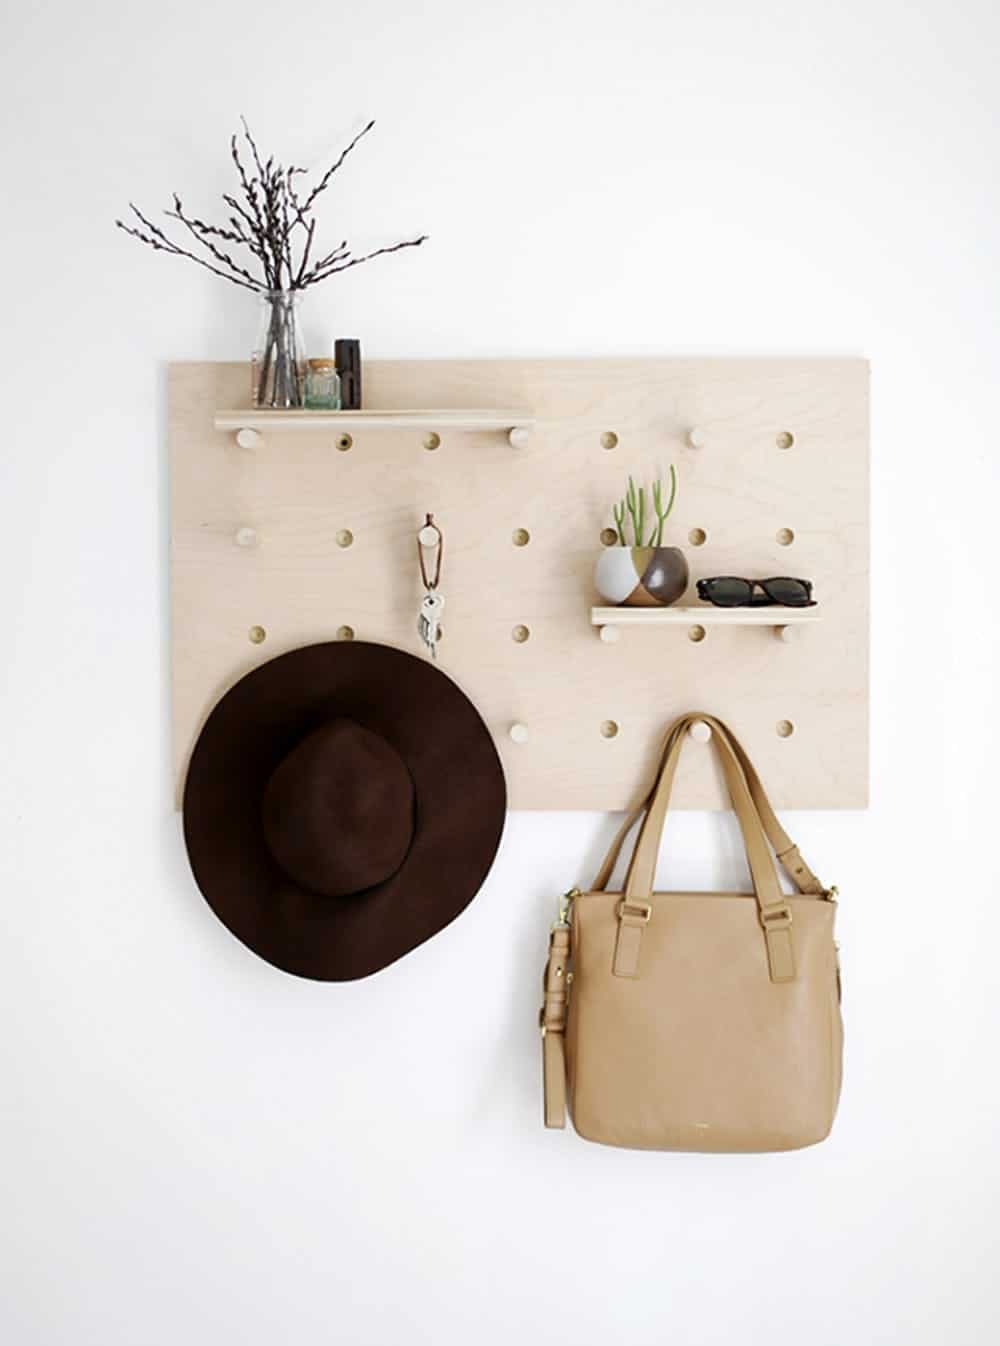 Pegboard entryway organization